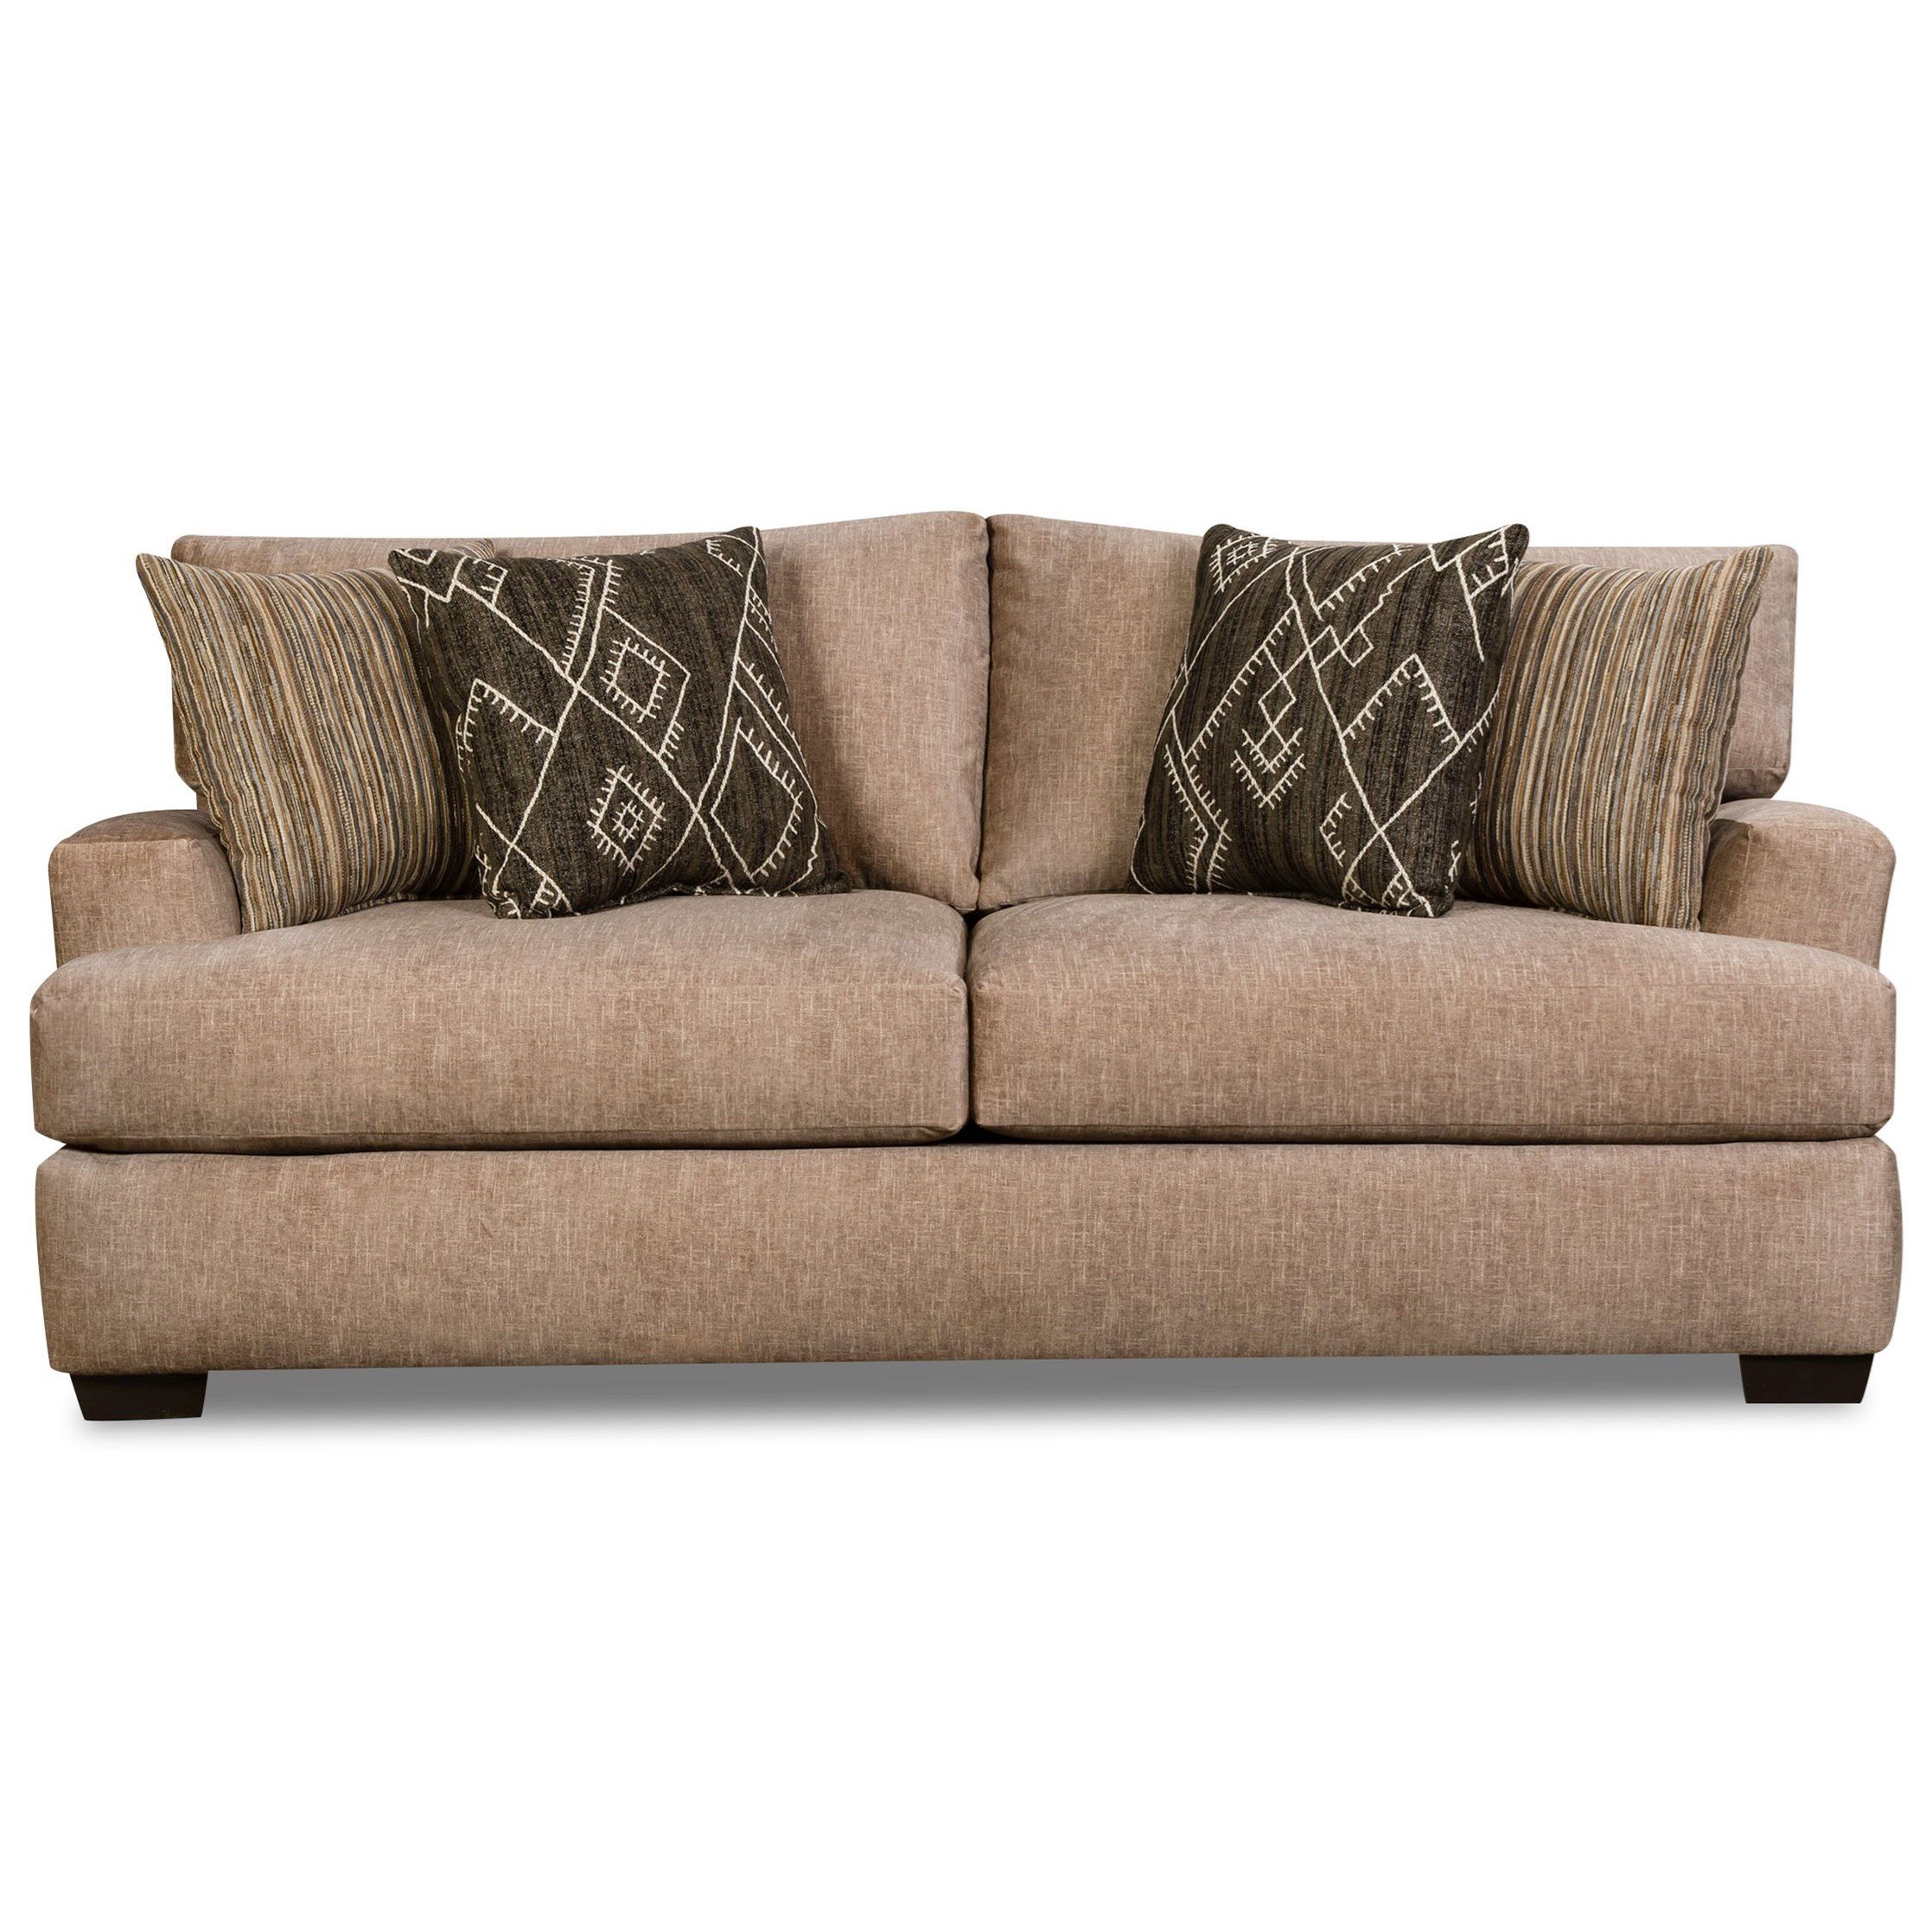 29D0 Sofa by Corinthian at Story & Lee Furniture